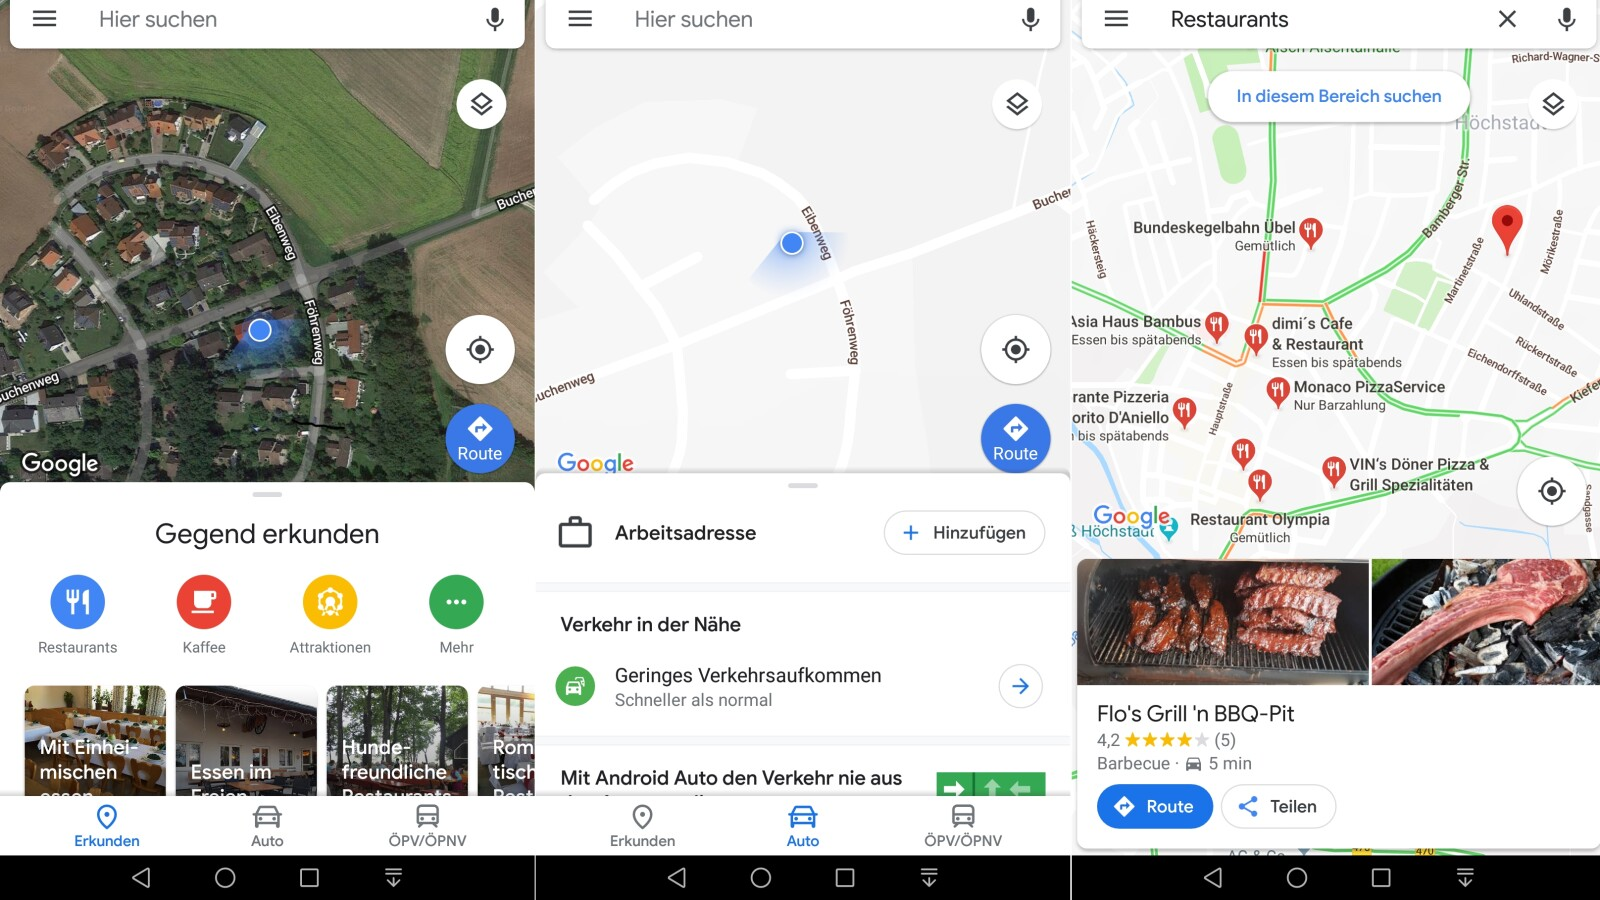 Google Maps: retreaded app also comes to German users on googlr maps, ipad maps, search maps, goolge maps, bing maps, amazon fire phone maps, googie maps, gppgle maps, aeronautical maps, gogole maps, waze maps, stanford university maps, iphone maps, online maps, topographic maps, msn maps, android maps, aerial maps, microsoft maps, road map usa states maps,